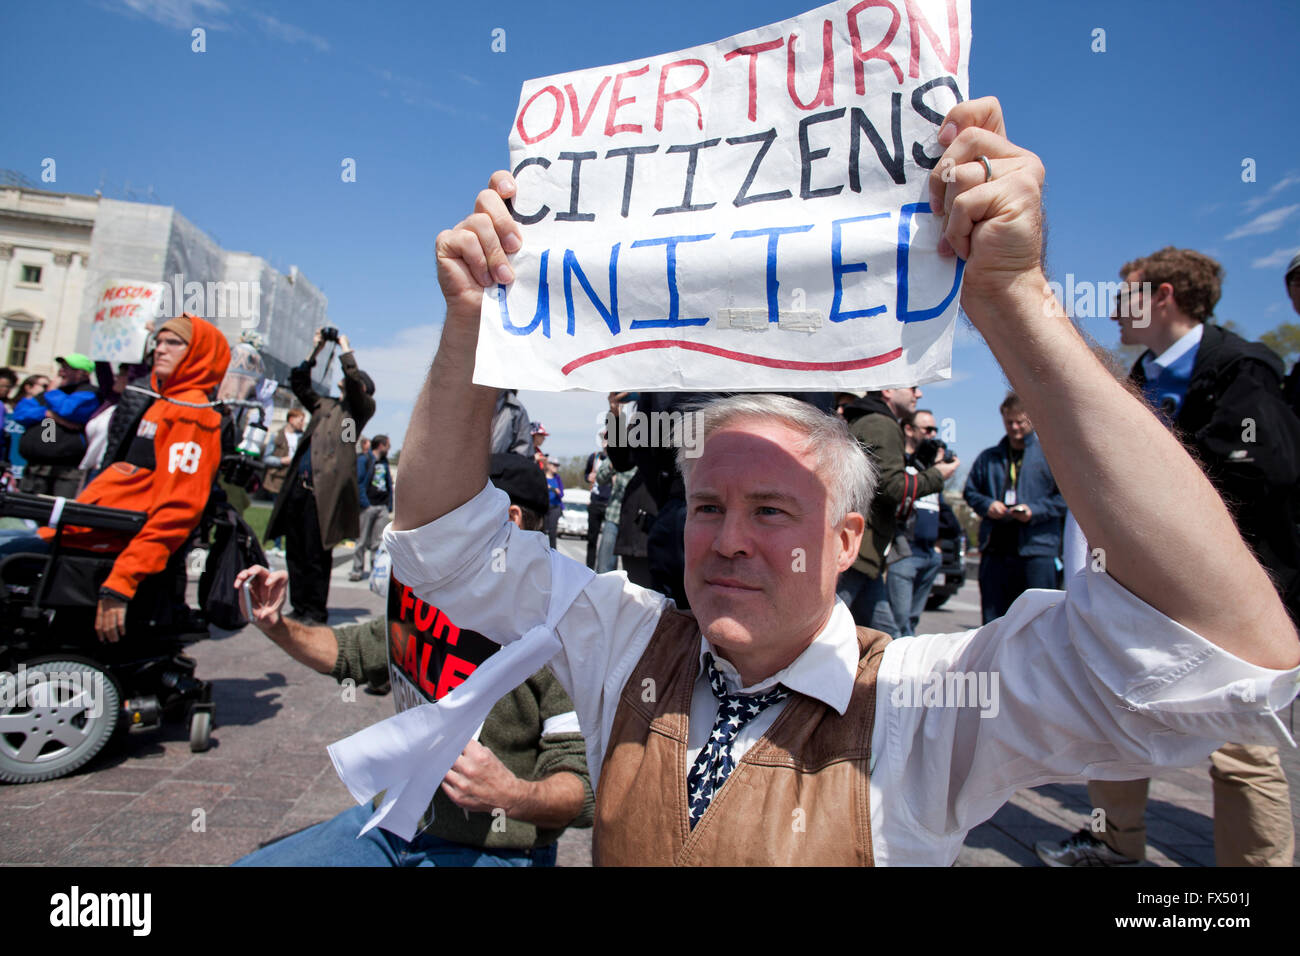 Washington, DC, USA. 11th April, 2016. Thousands of Democracy Spring activists from across the country protest and march to the Capitol building.  The protesters demanded fairer elections, politics free from corporate influence, the expansion and protection of voting rights, and the assurance of equal voice in government by all Americans. Credit:  B Christopher/Alamy Live News Stock Photo